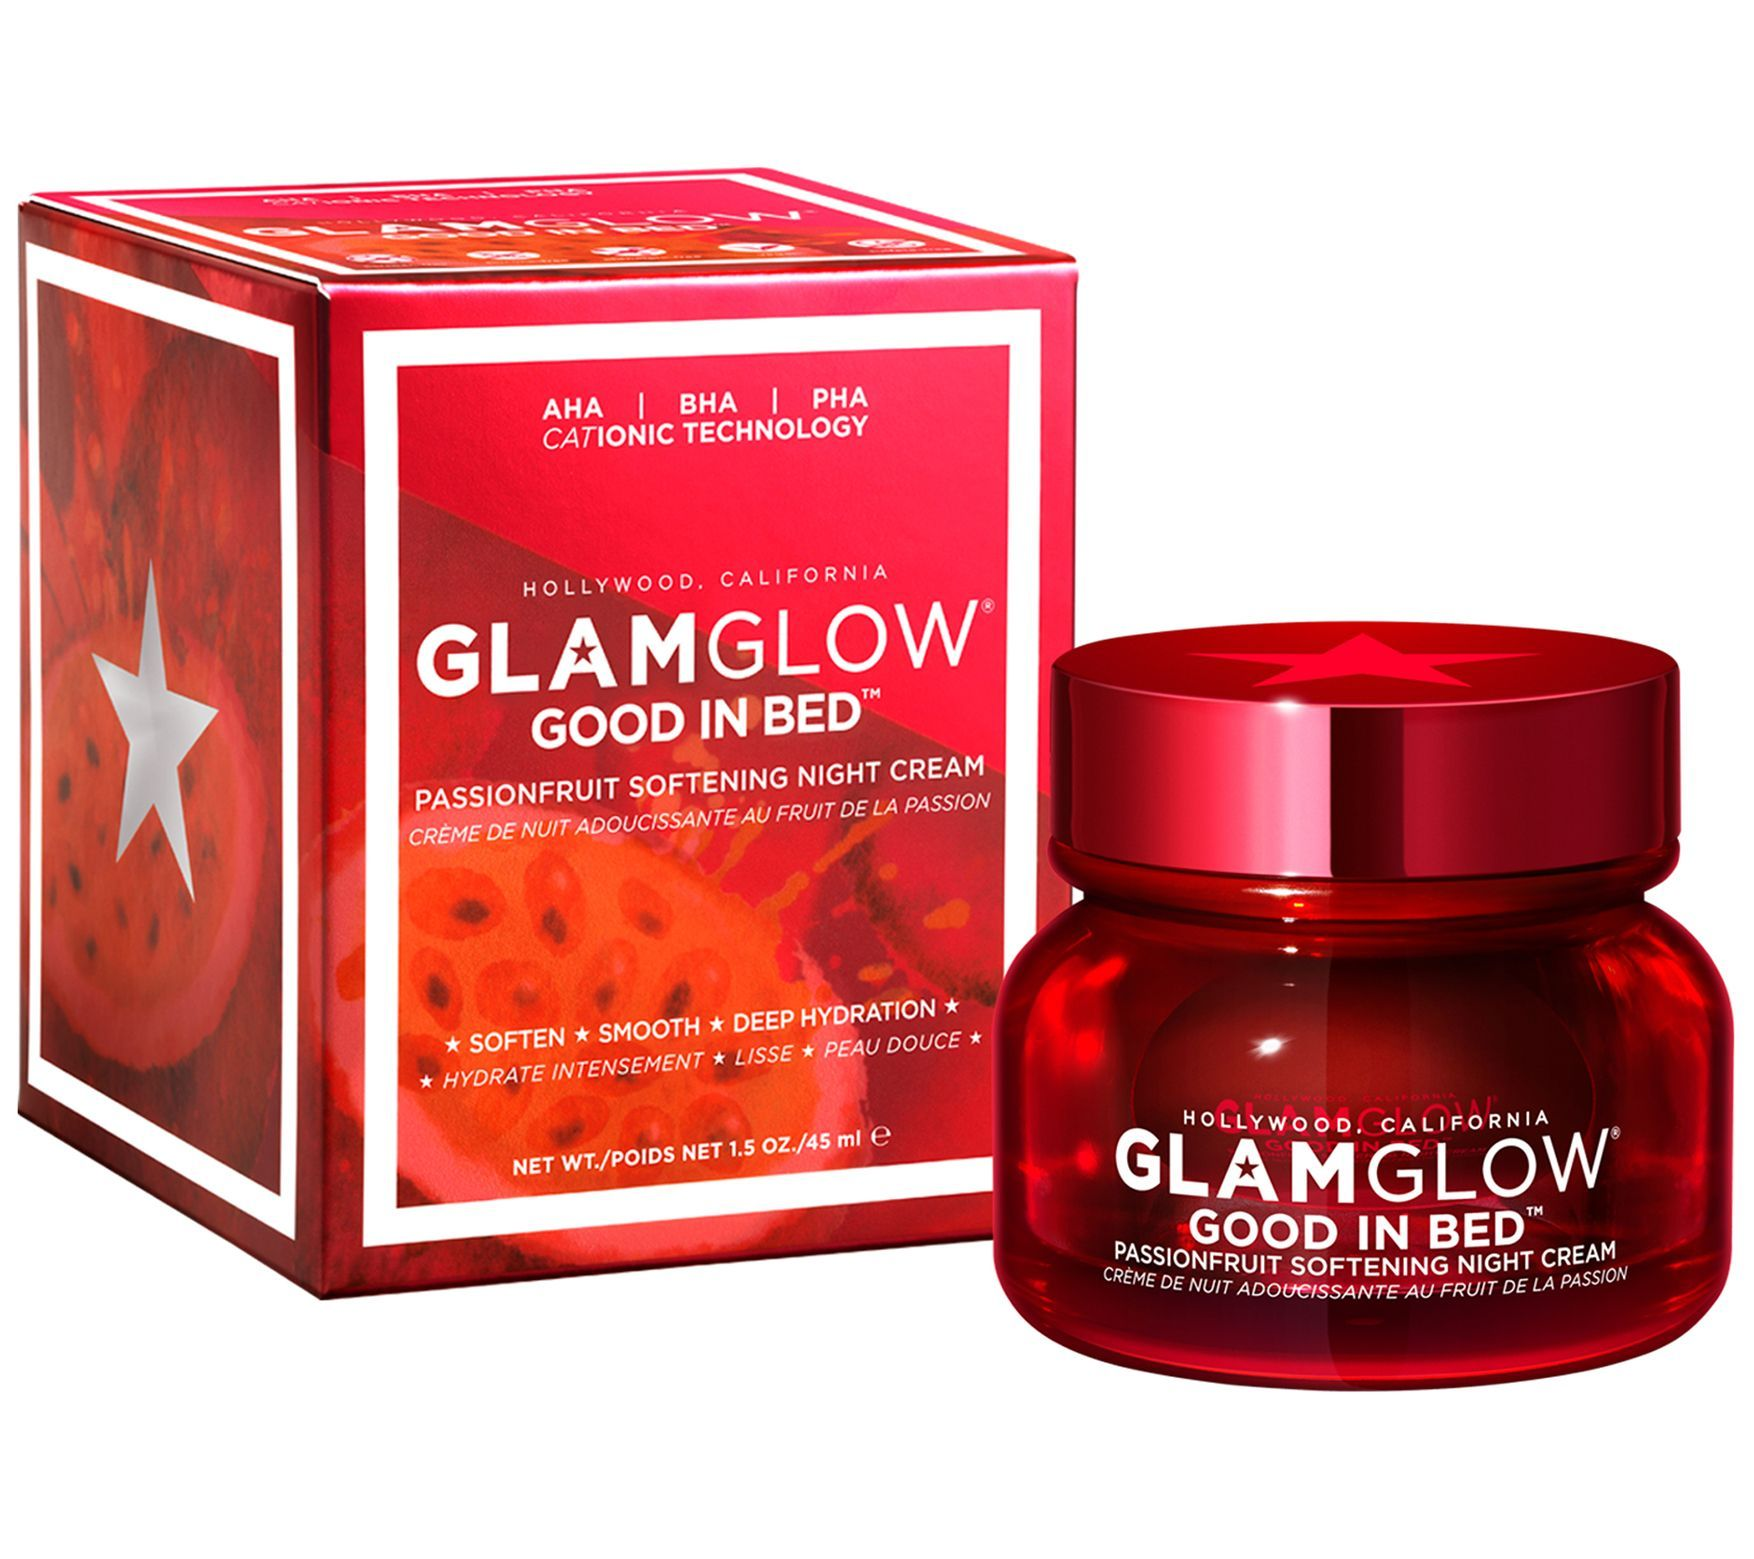 Glamglow Good In Bed Passionfruit Night Cream 1.5 oz in